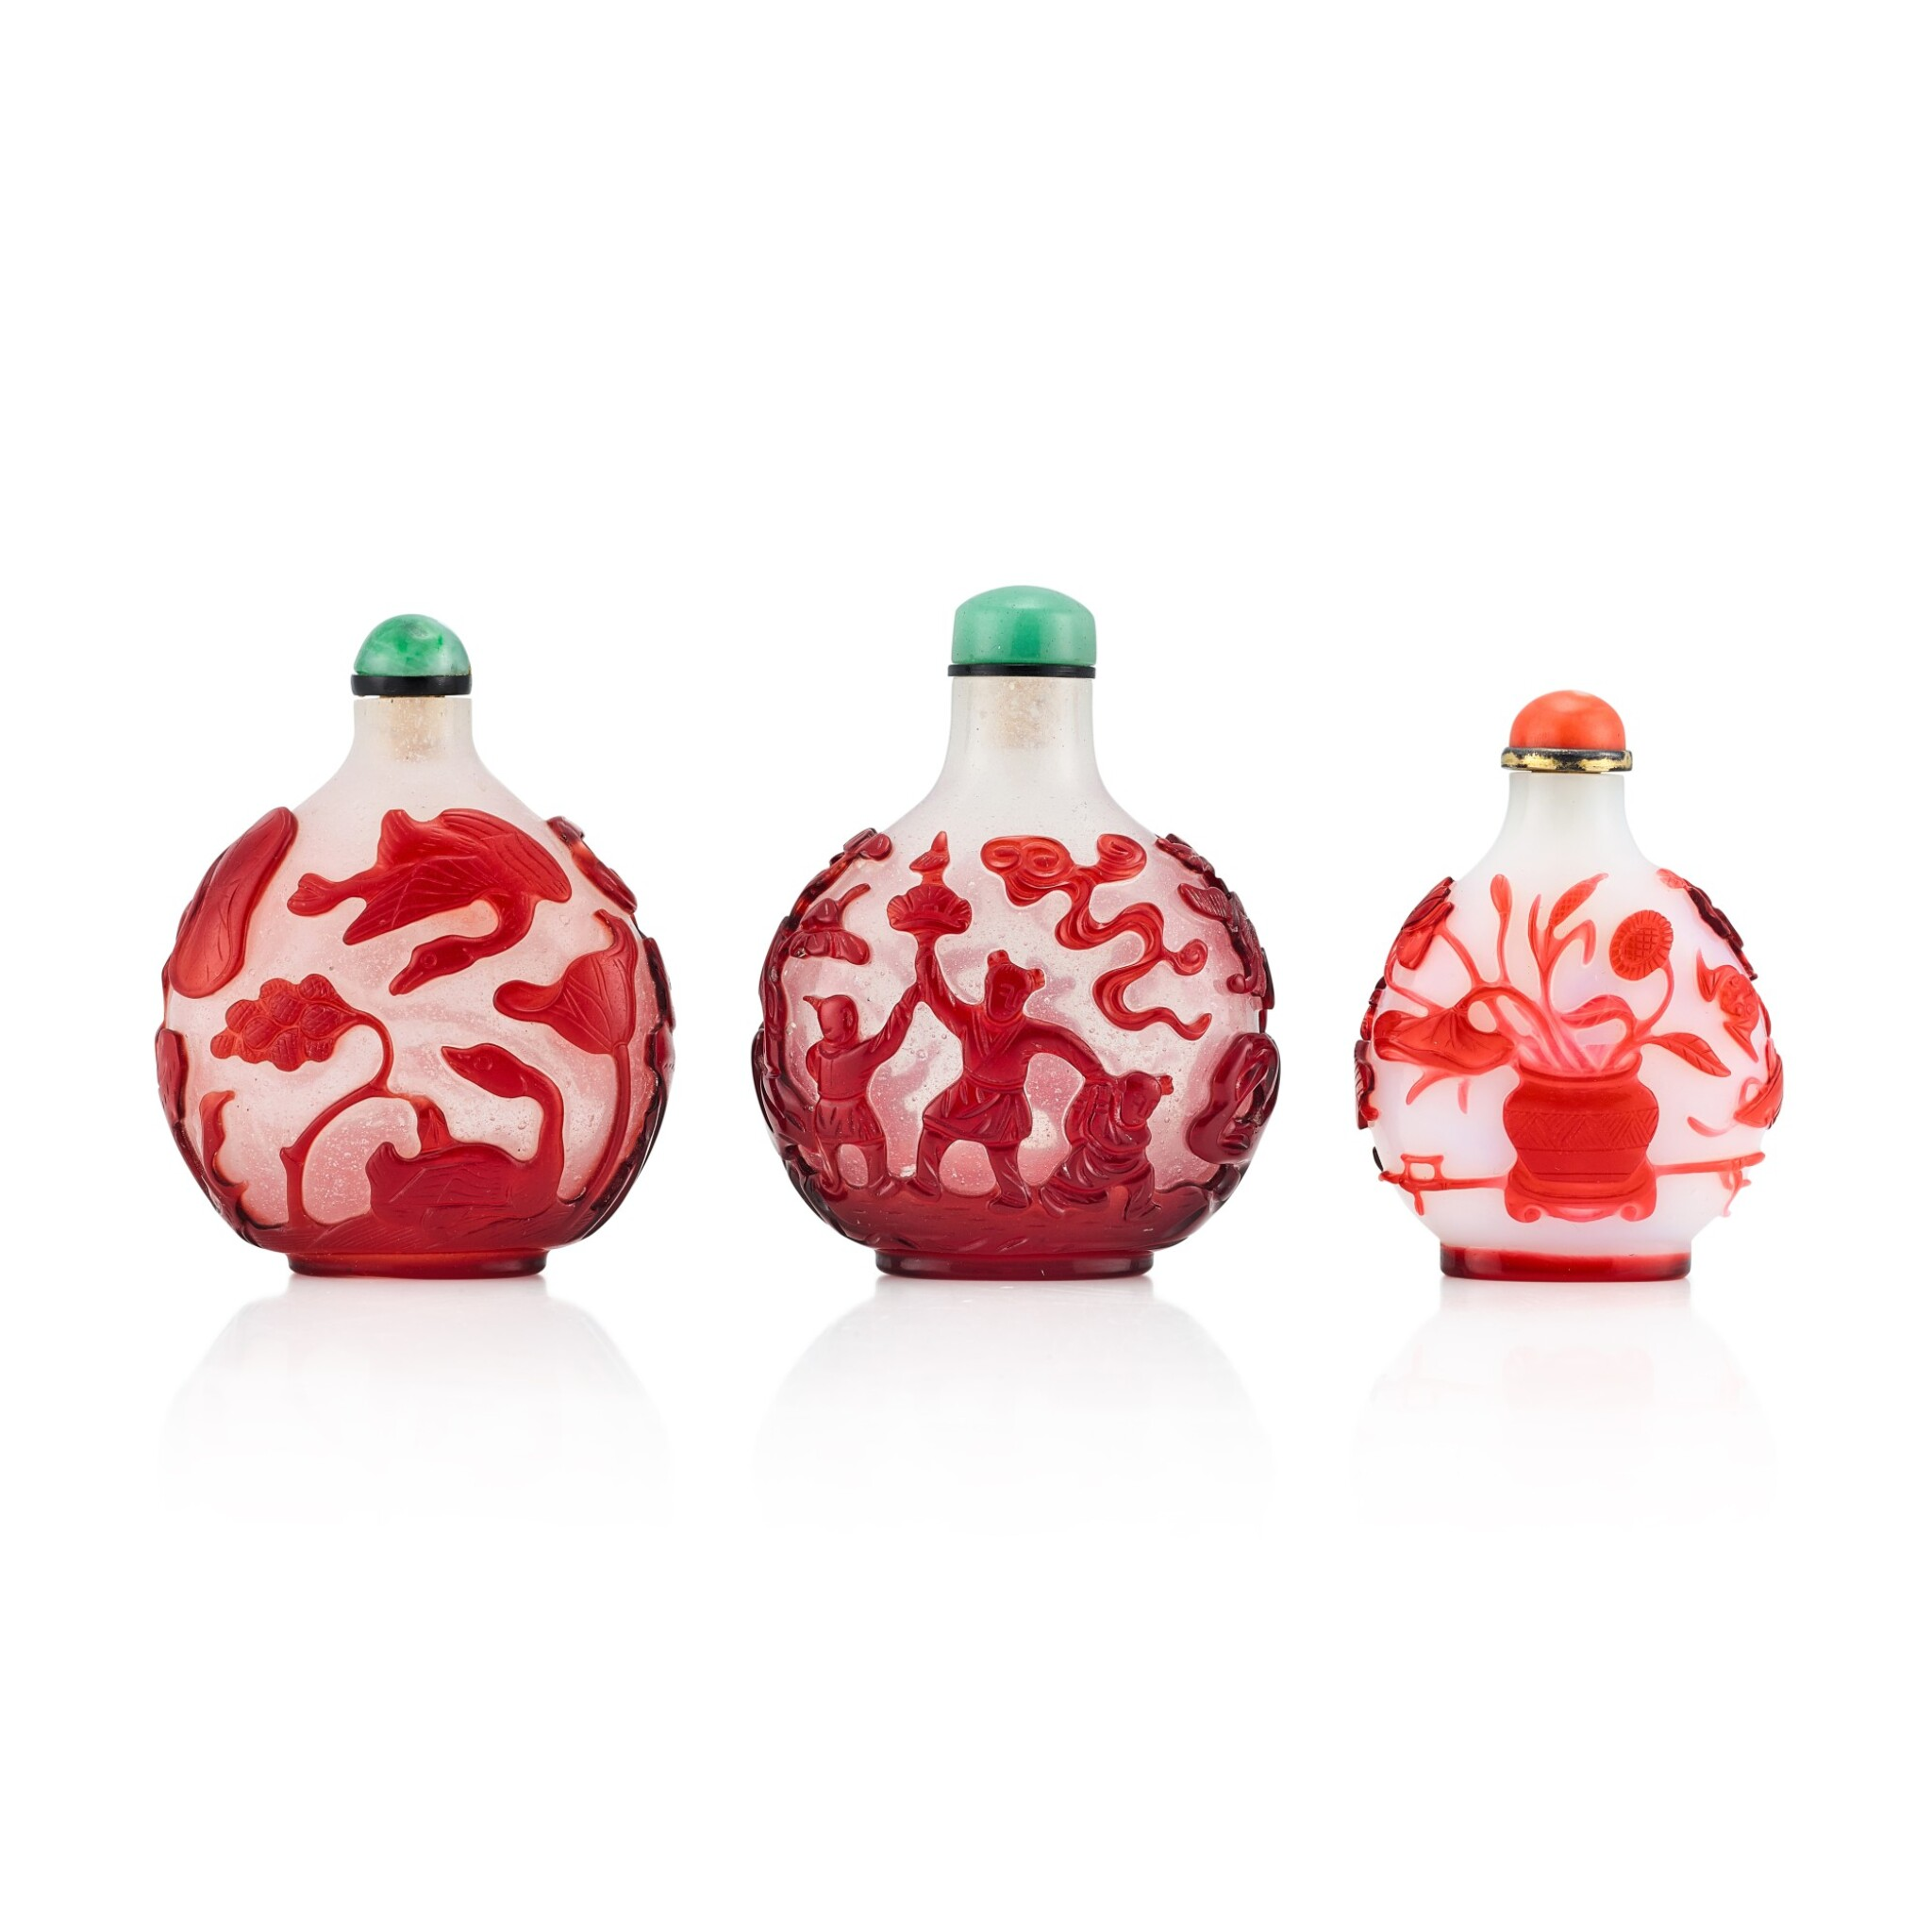 View 1 of Lot 3074. Three Ruby-Red Overlay Glass Snuff Bottles Qing Dynasty, 18th - 19th Century | 清十八至十九世紀 涅白與雪霏地套紅料鼻煙壺三件.